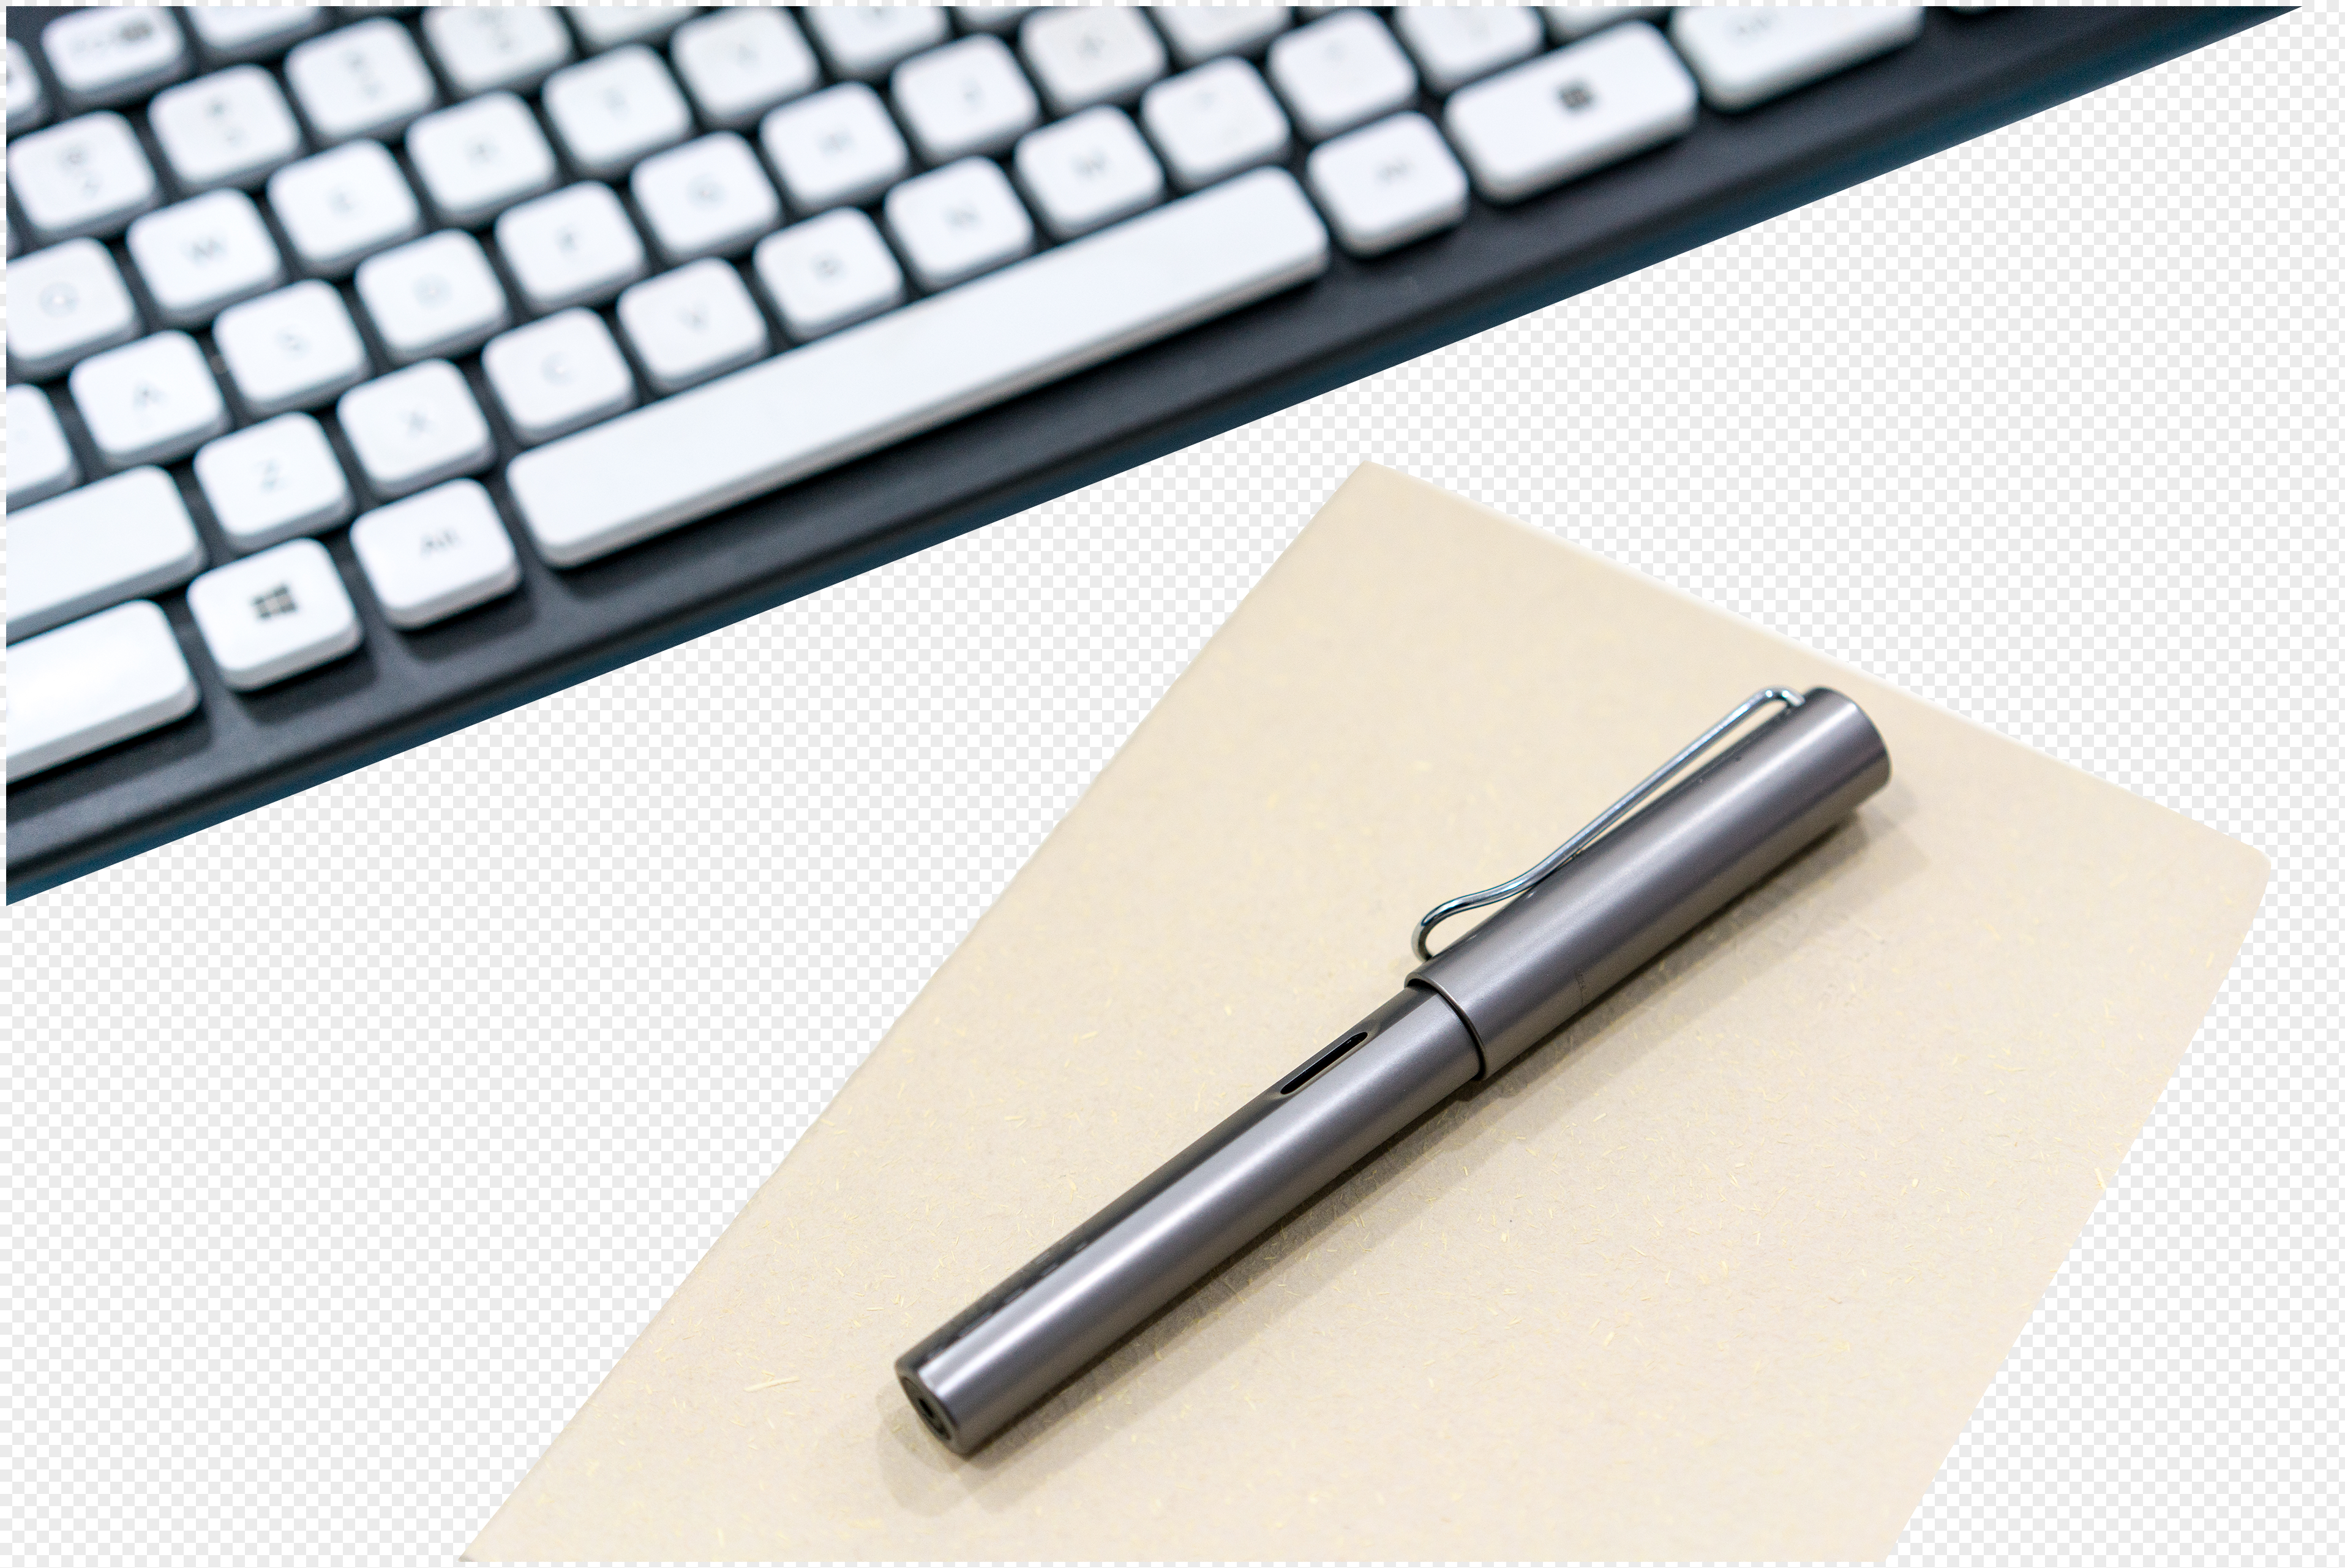 desktop pen stationery filming graphics image picture free download